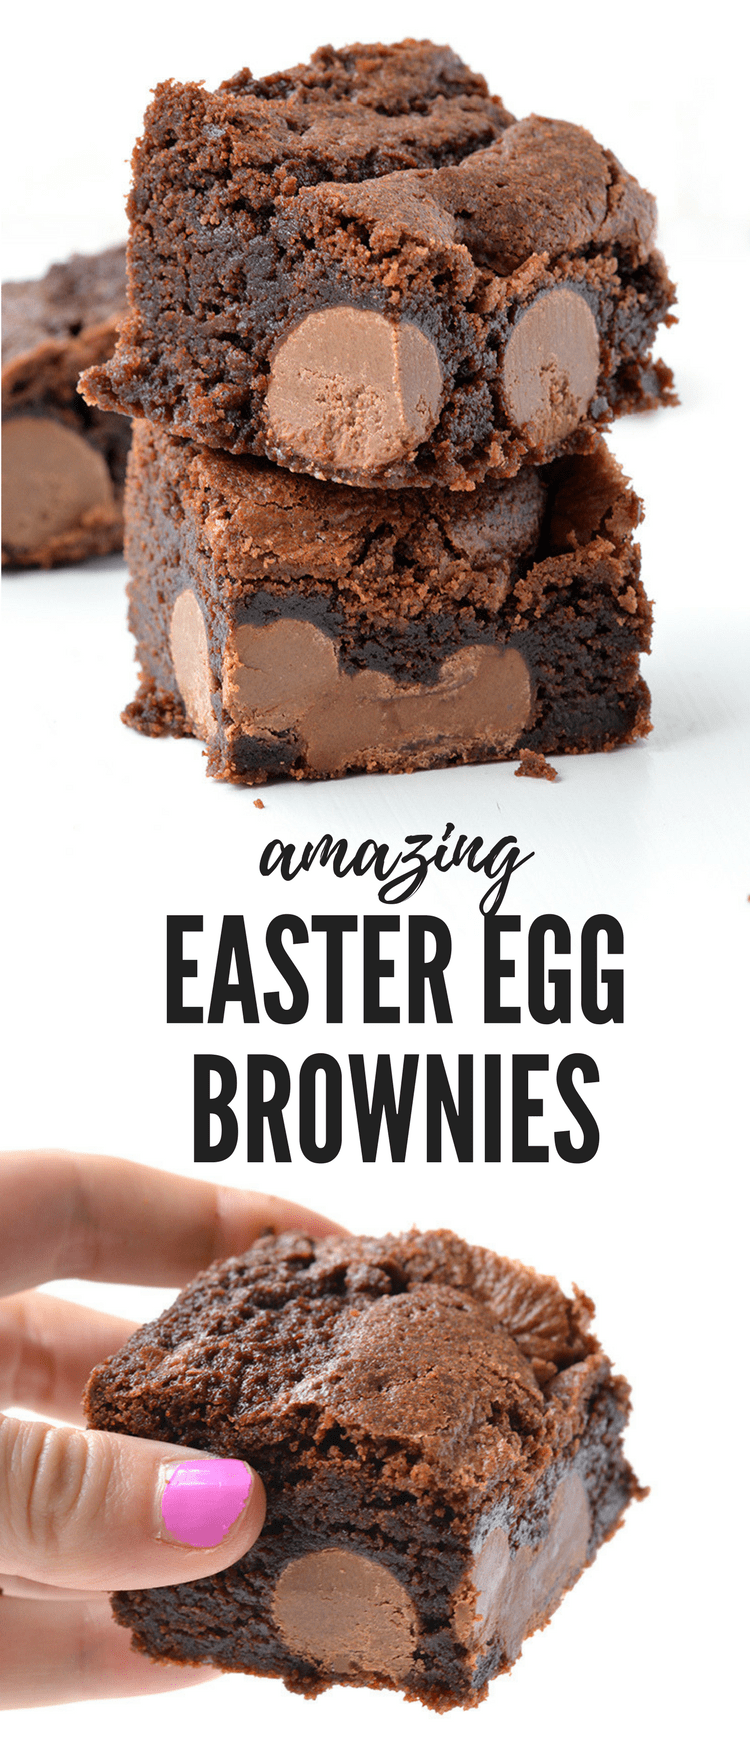 AMAZING Easter Egg Chocolate Brownies with a extra fudgy centre and chewy edges. Stuffed with mini Easter eggs, it's a special Easter dessert. Recipe from sweetestmenu.com #brownies #easter #chocolate #eastereggs